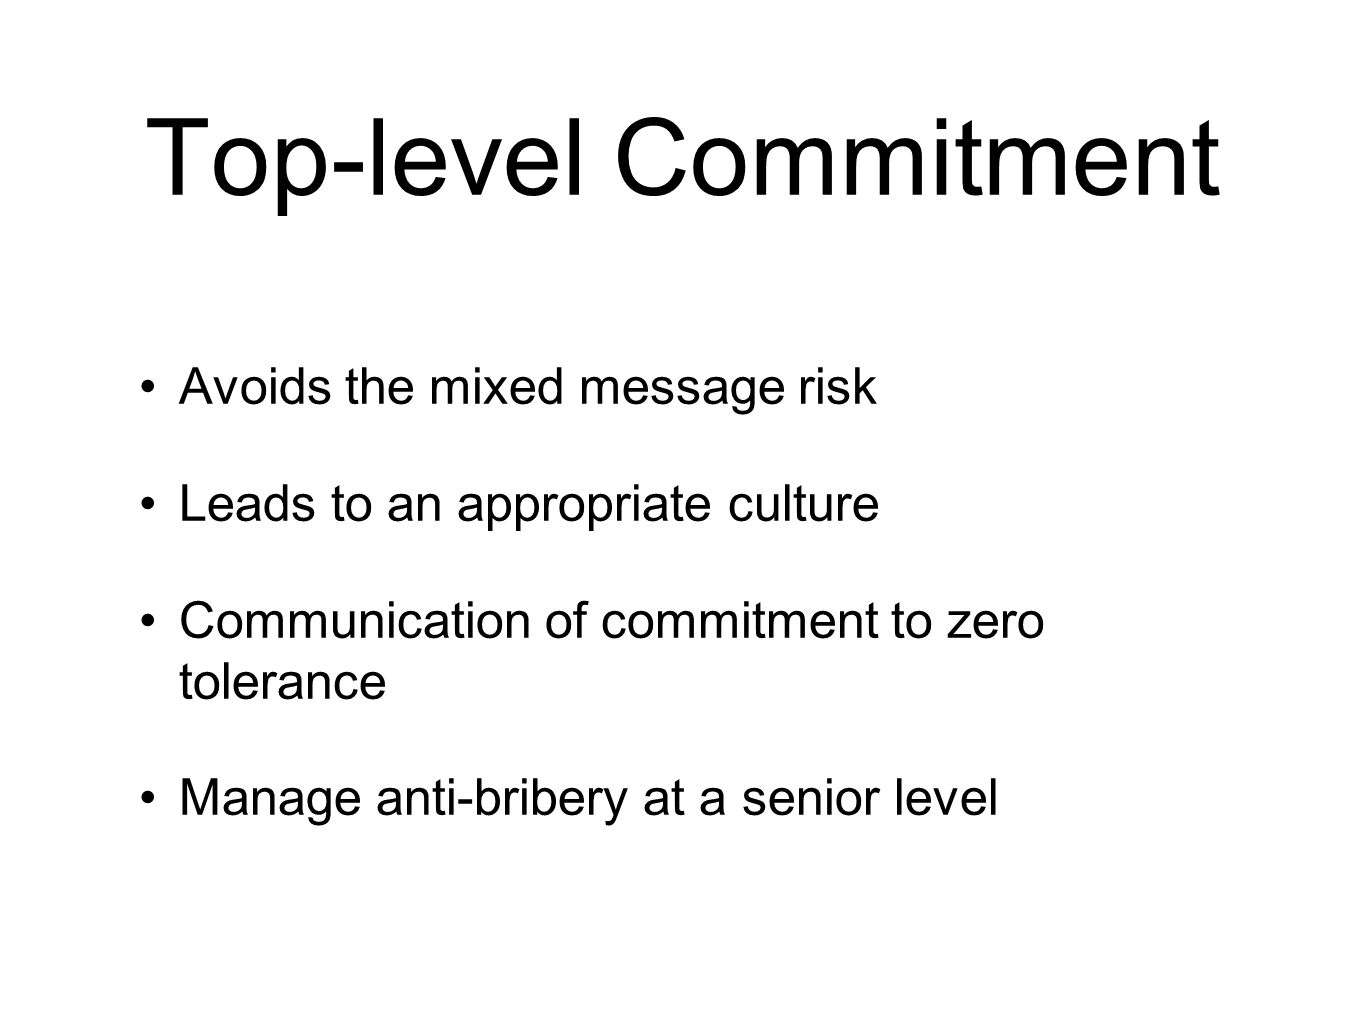 Top-level Commitment Avoids the mixed message risk Leads to an appropriate culture Communication of commitment to zero tolerance Manage anti-bribery at a senior level